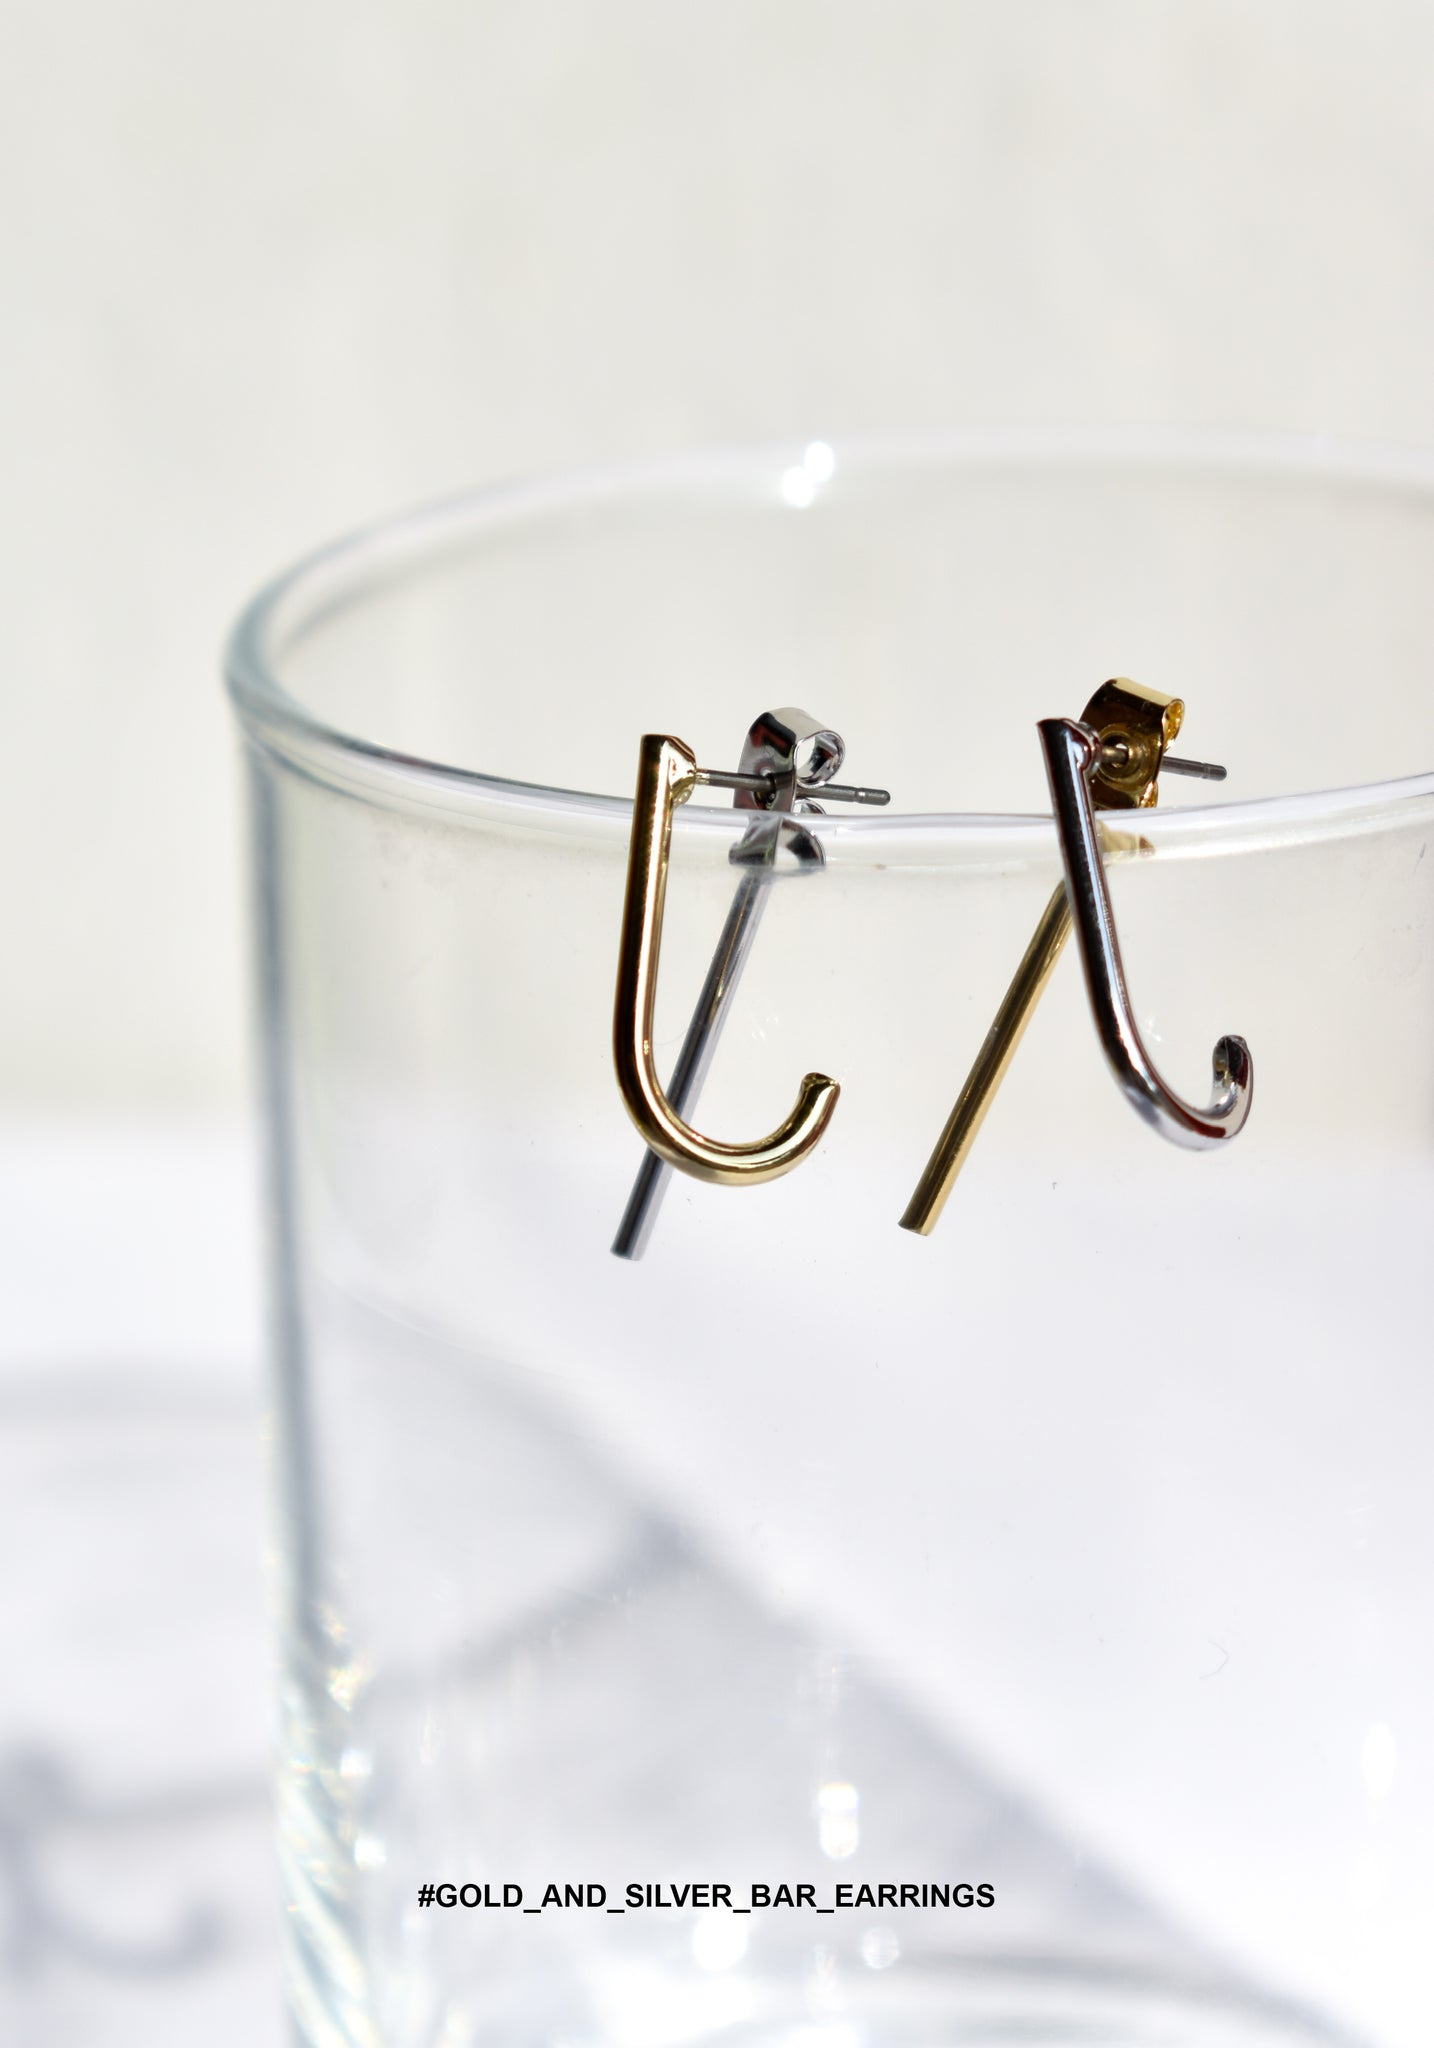 Gold And Silver Bar Earrings - whoami